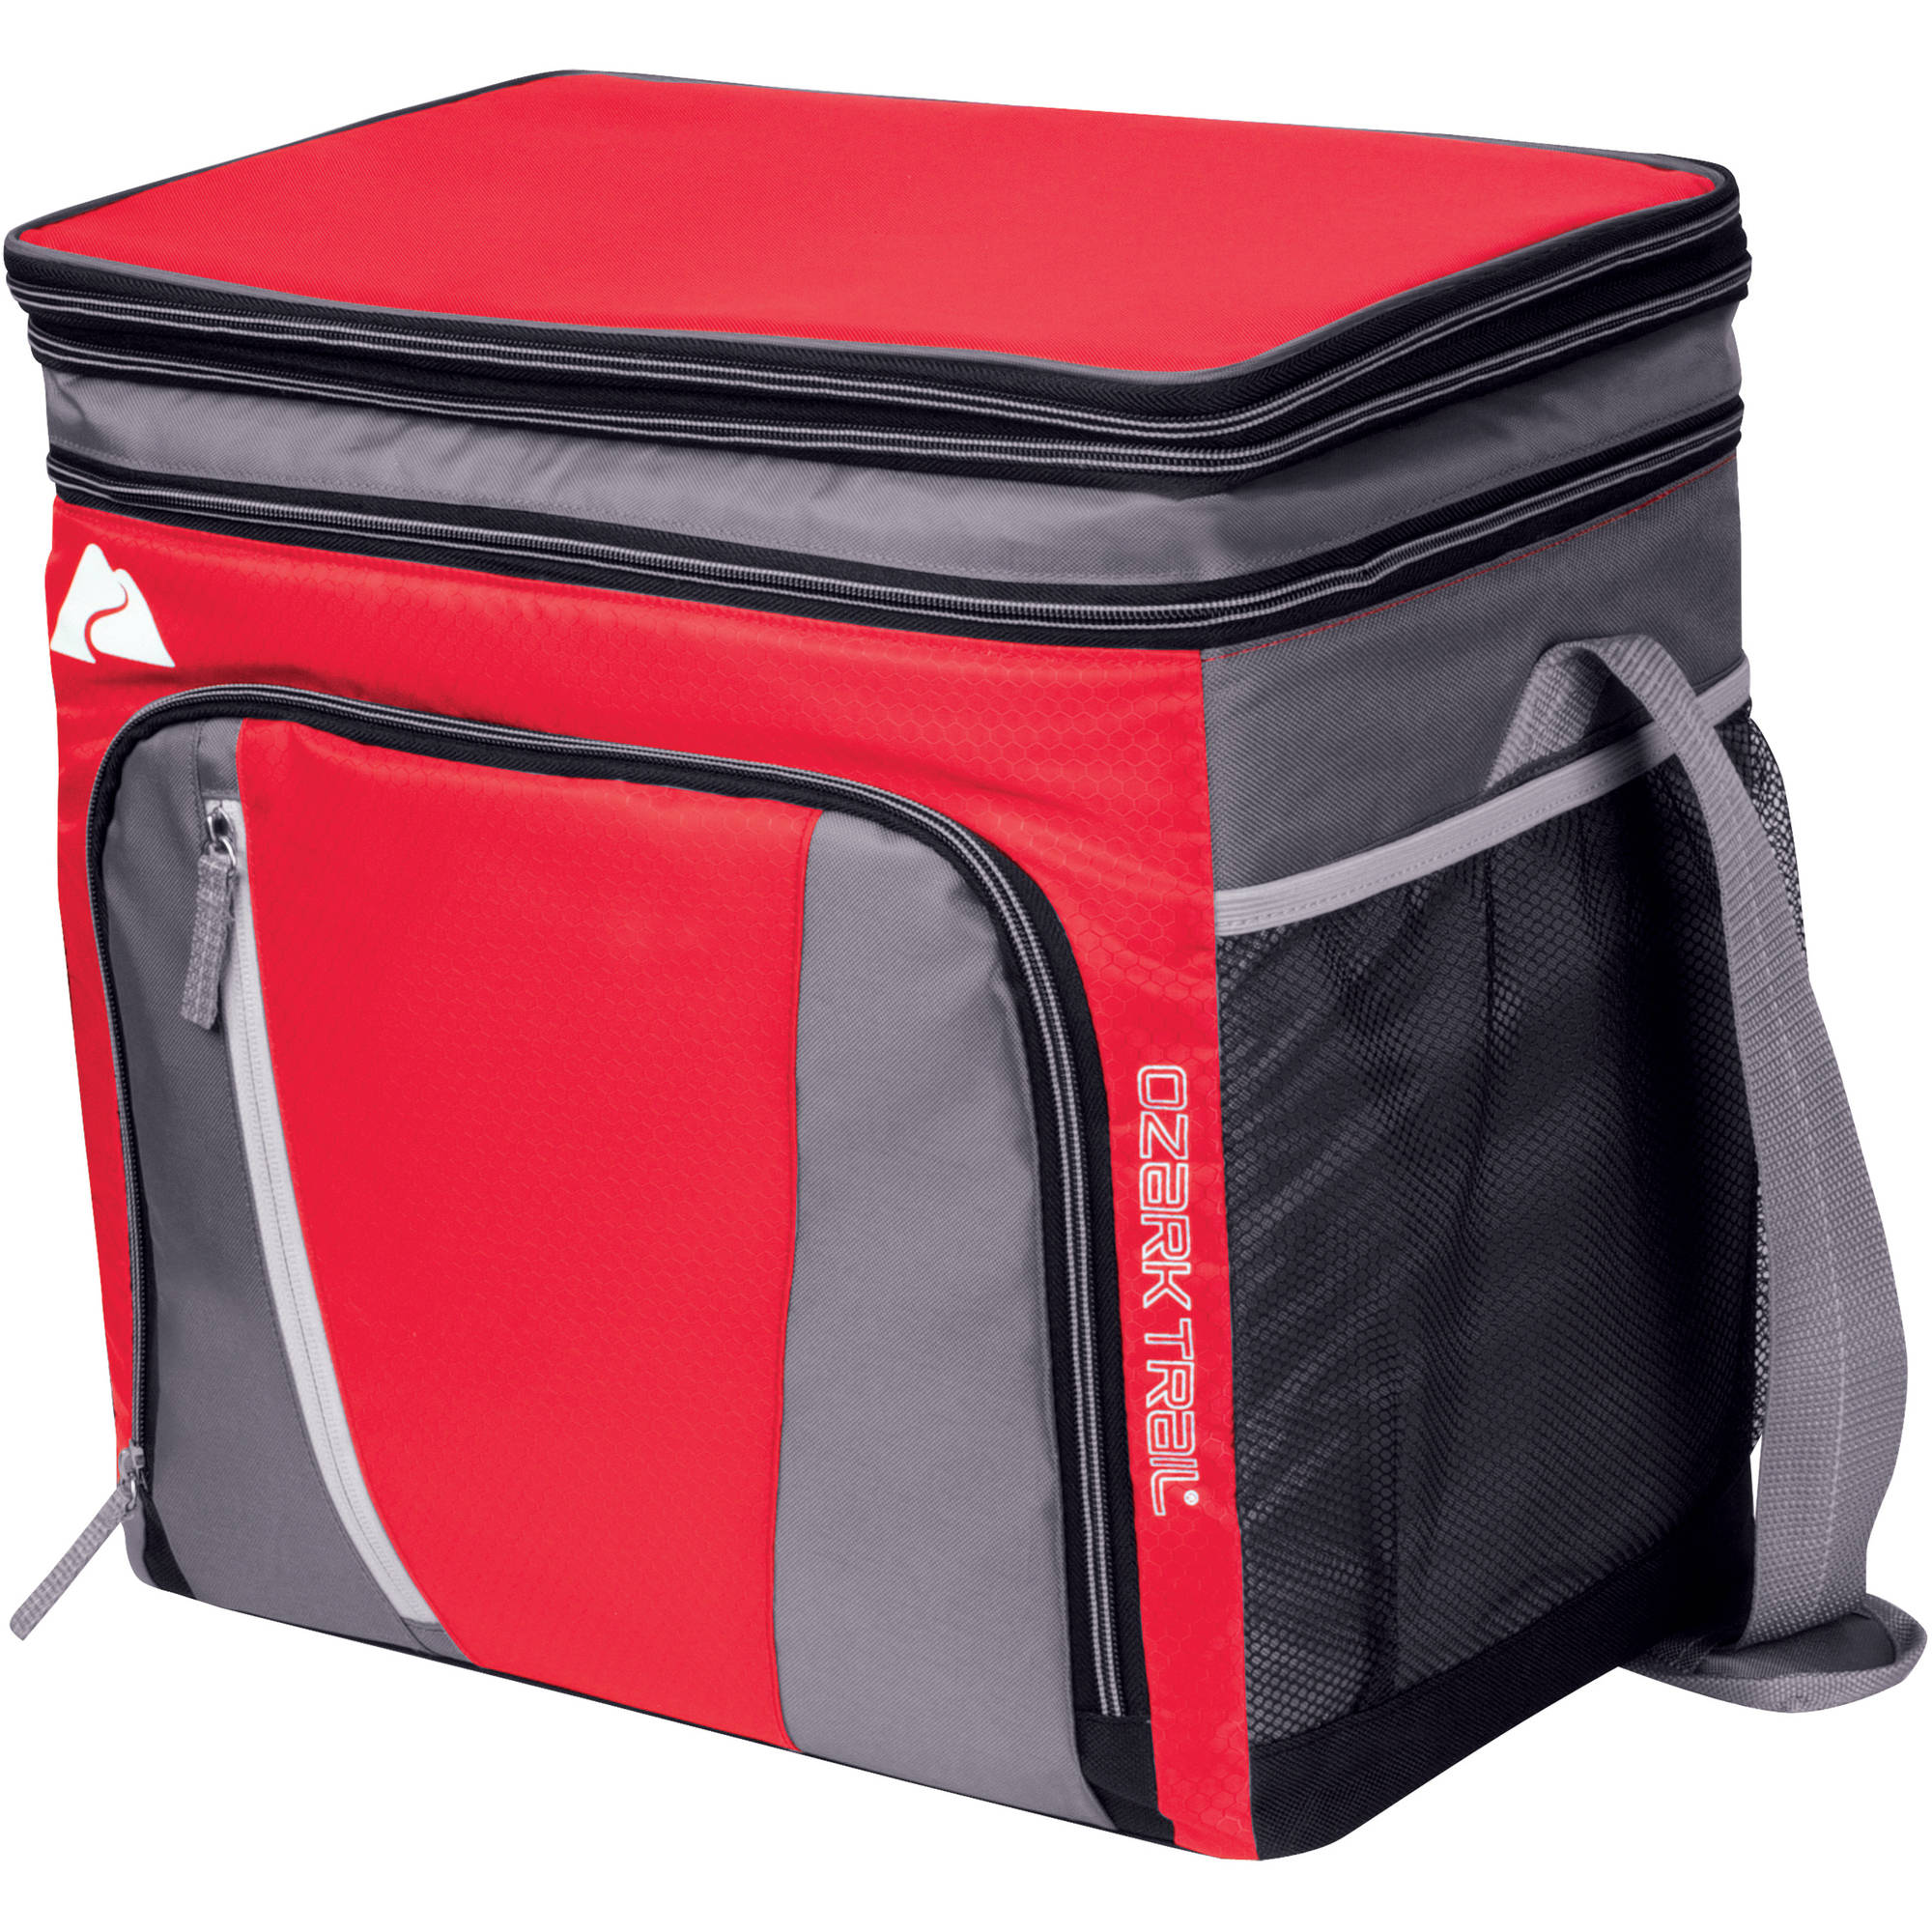 Ozark Trail 36-Can Cooler with Removable Hardliner